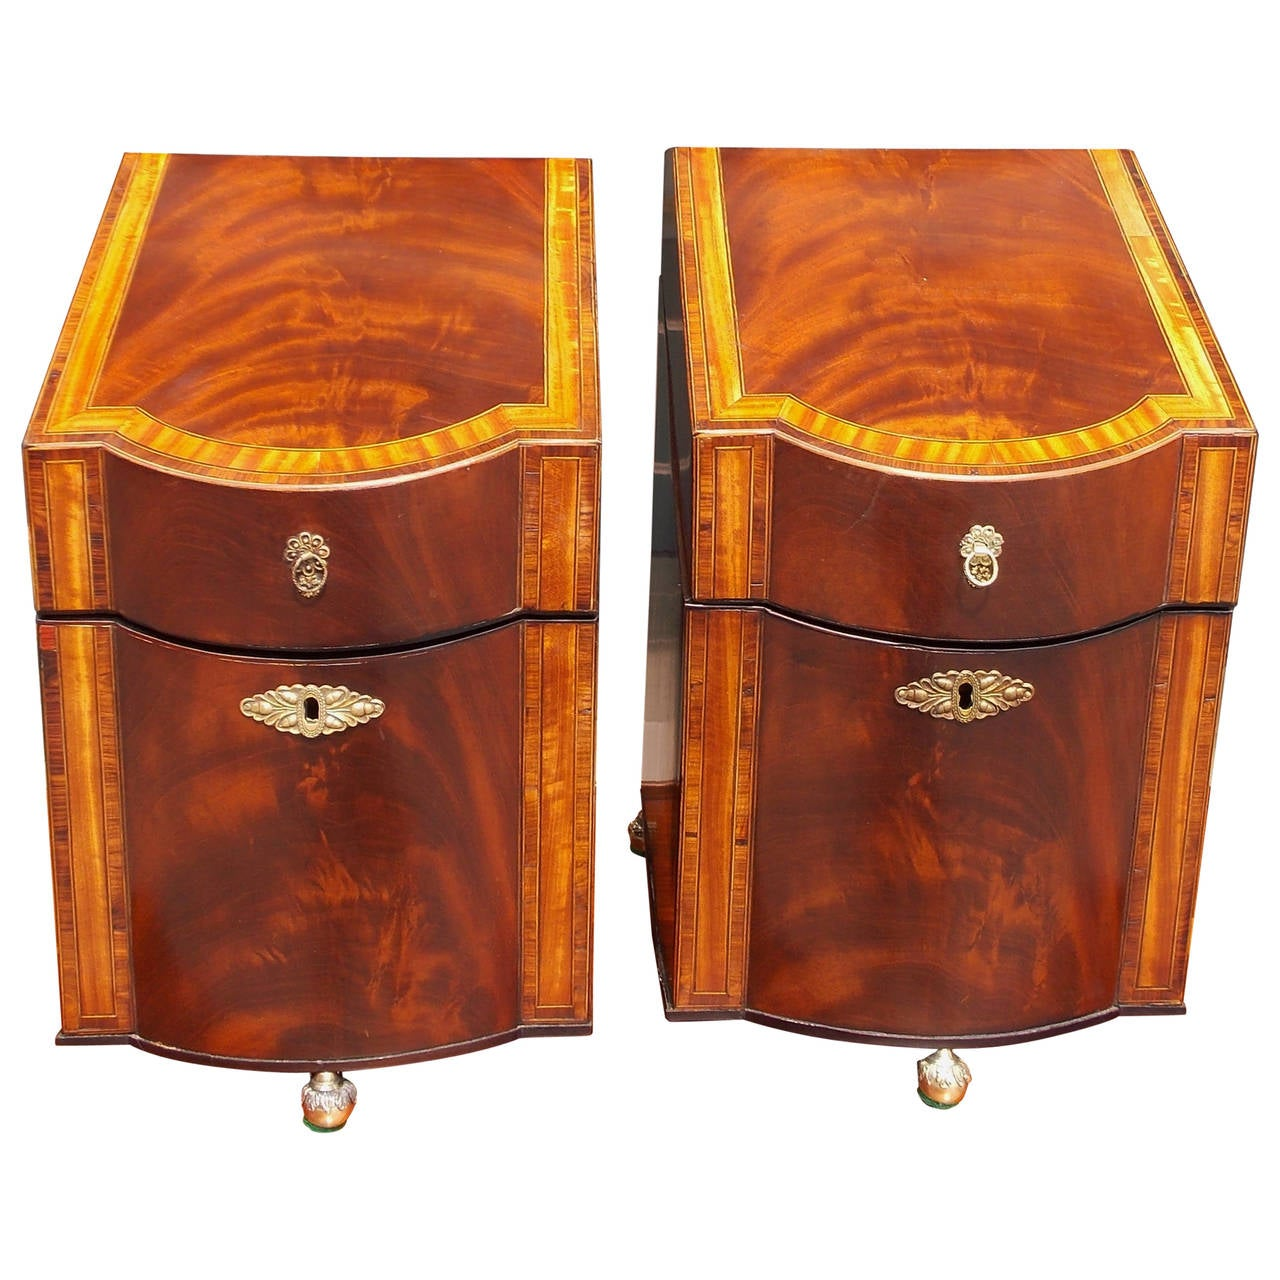 Pair of American Mahogany Inlaid Cutlery Boxes Charleston, SC, Circa 1790 For Sale